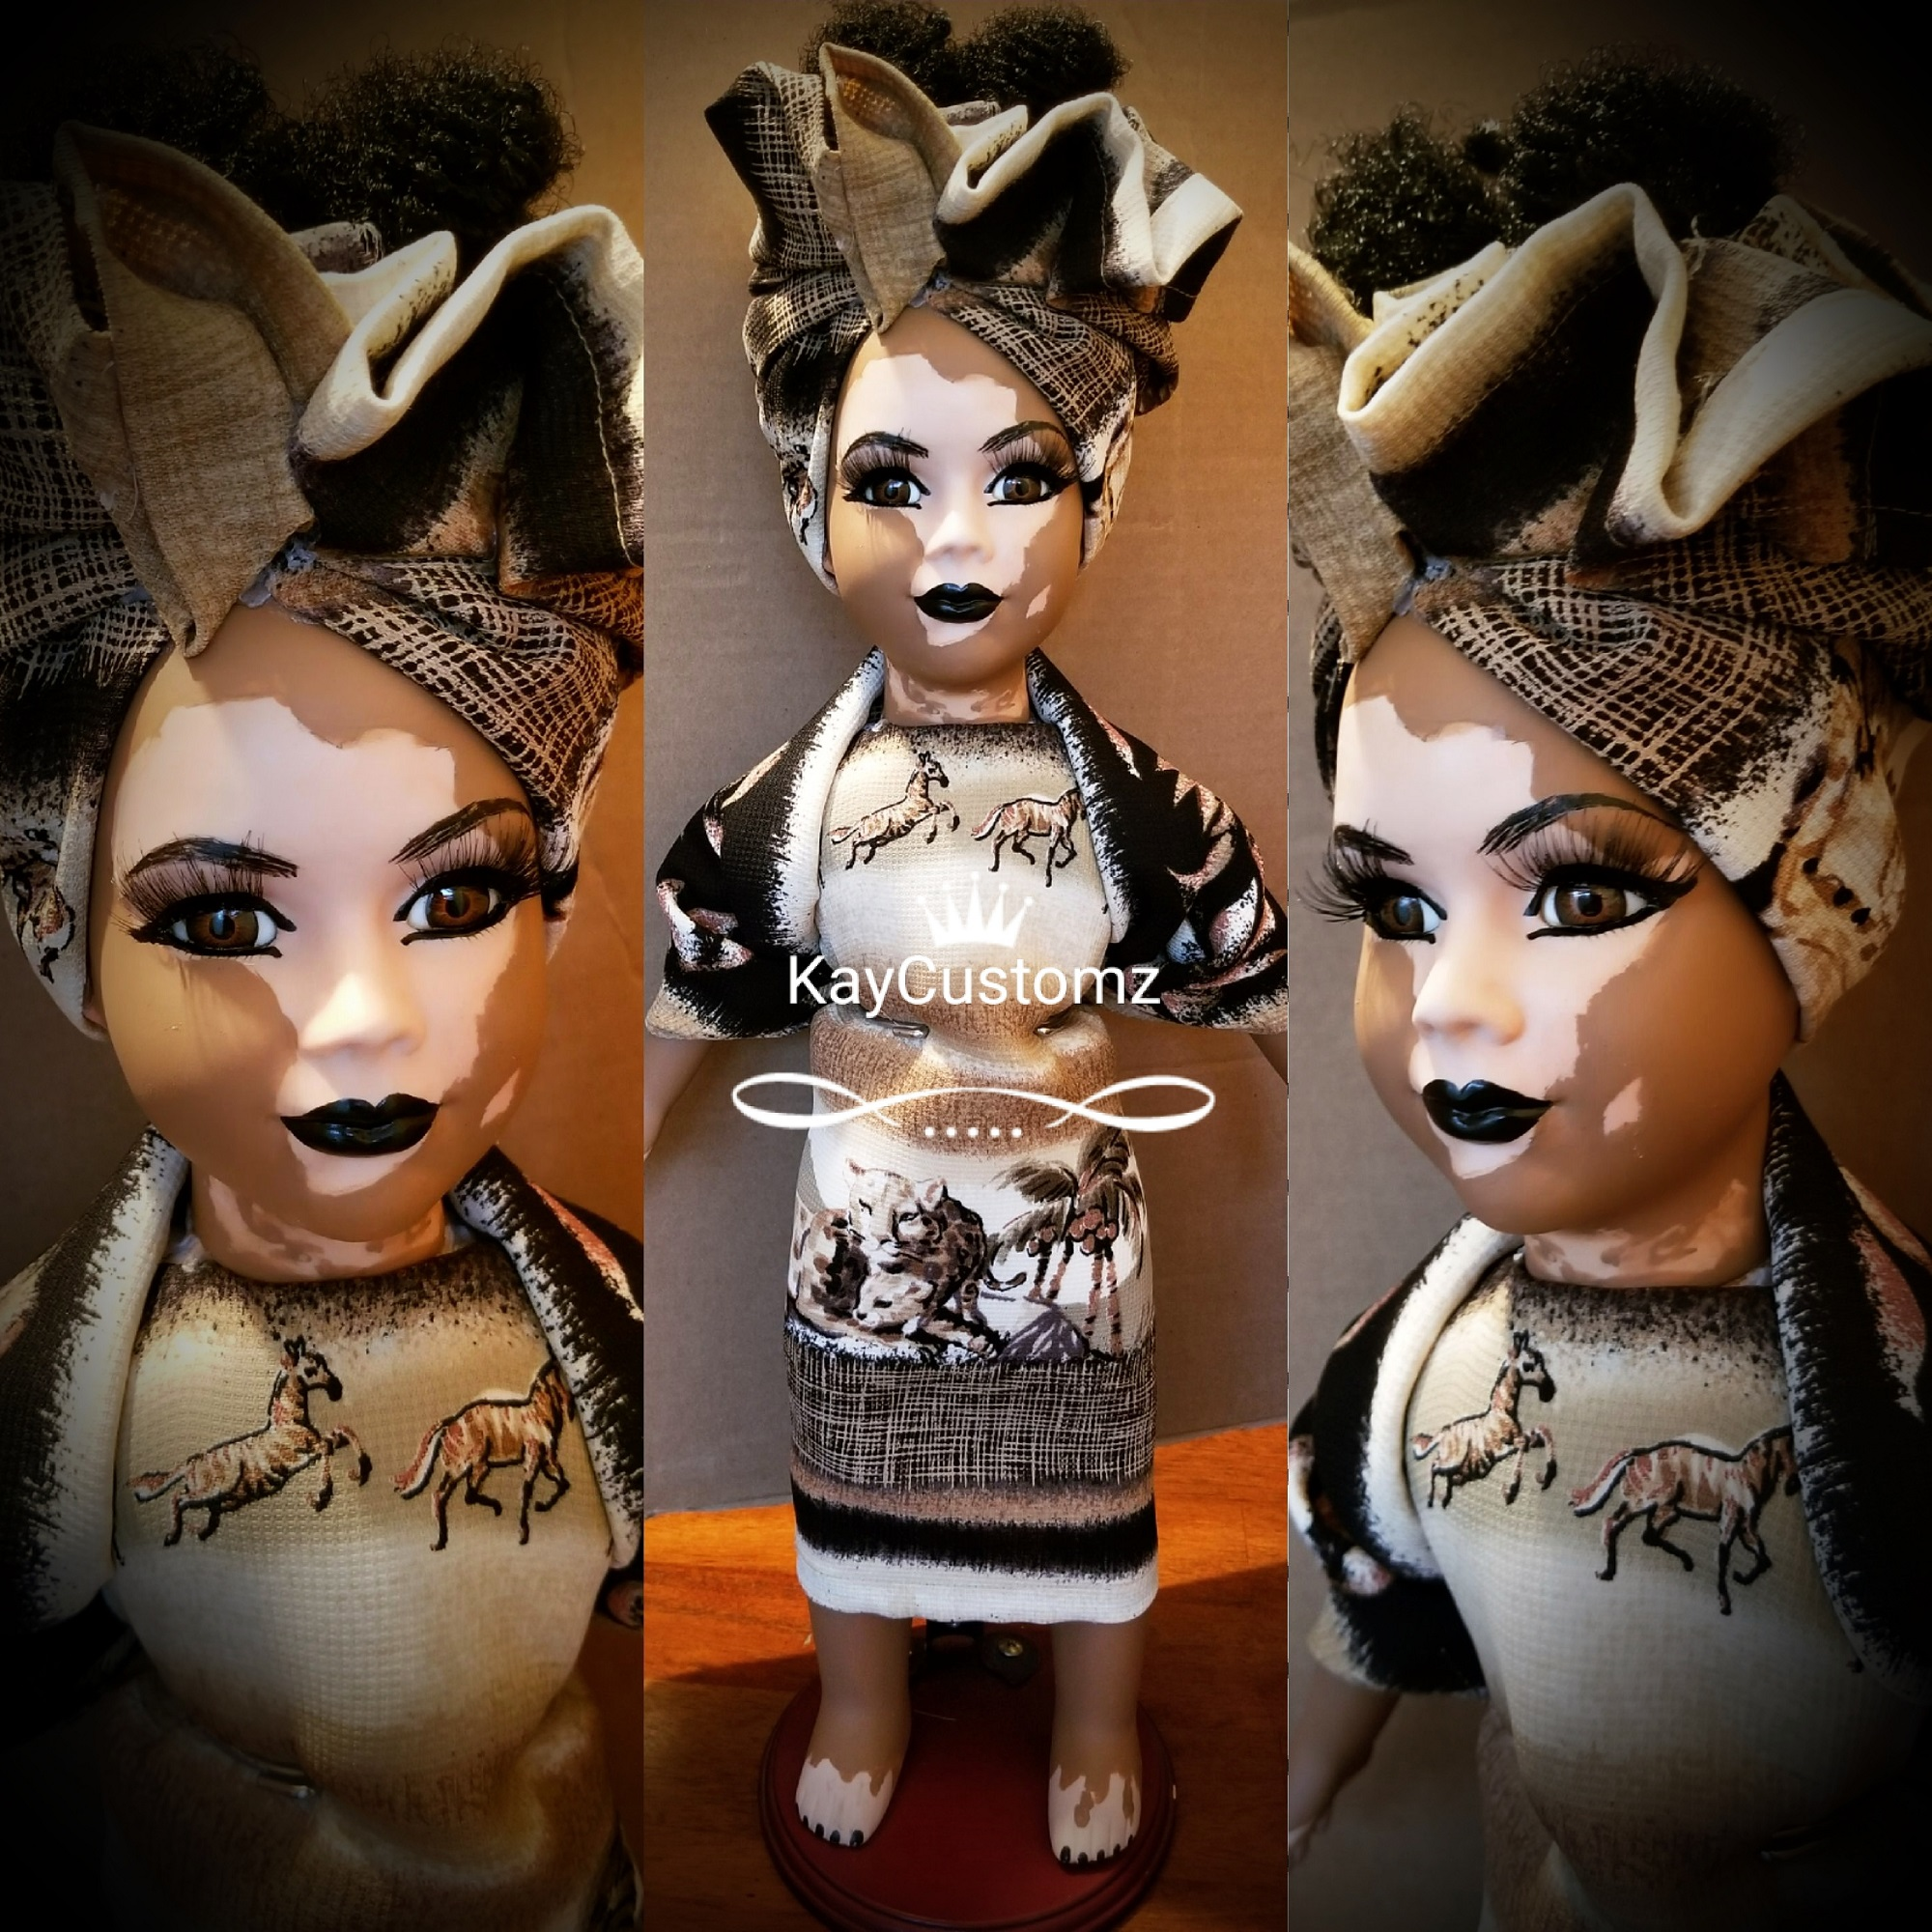 Dolls with vitiligo